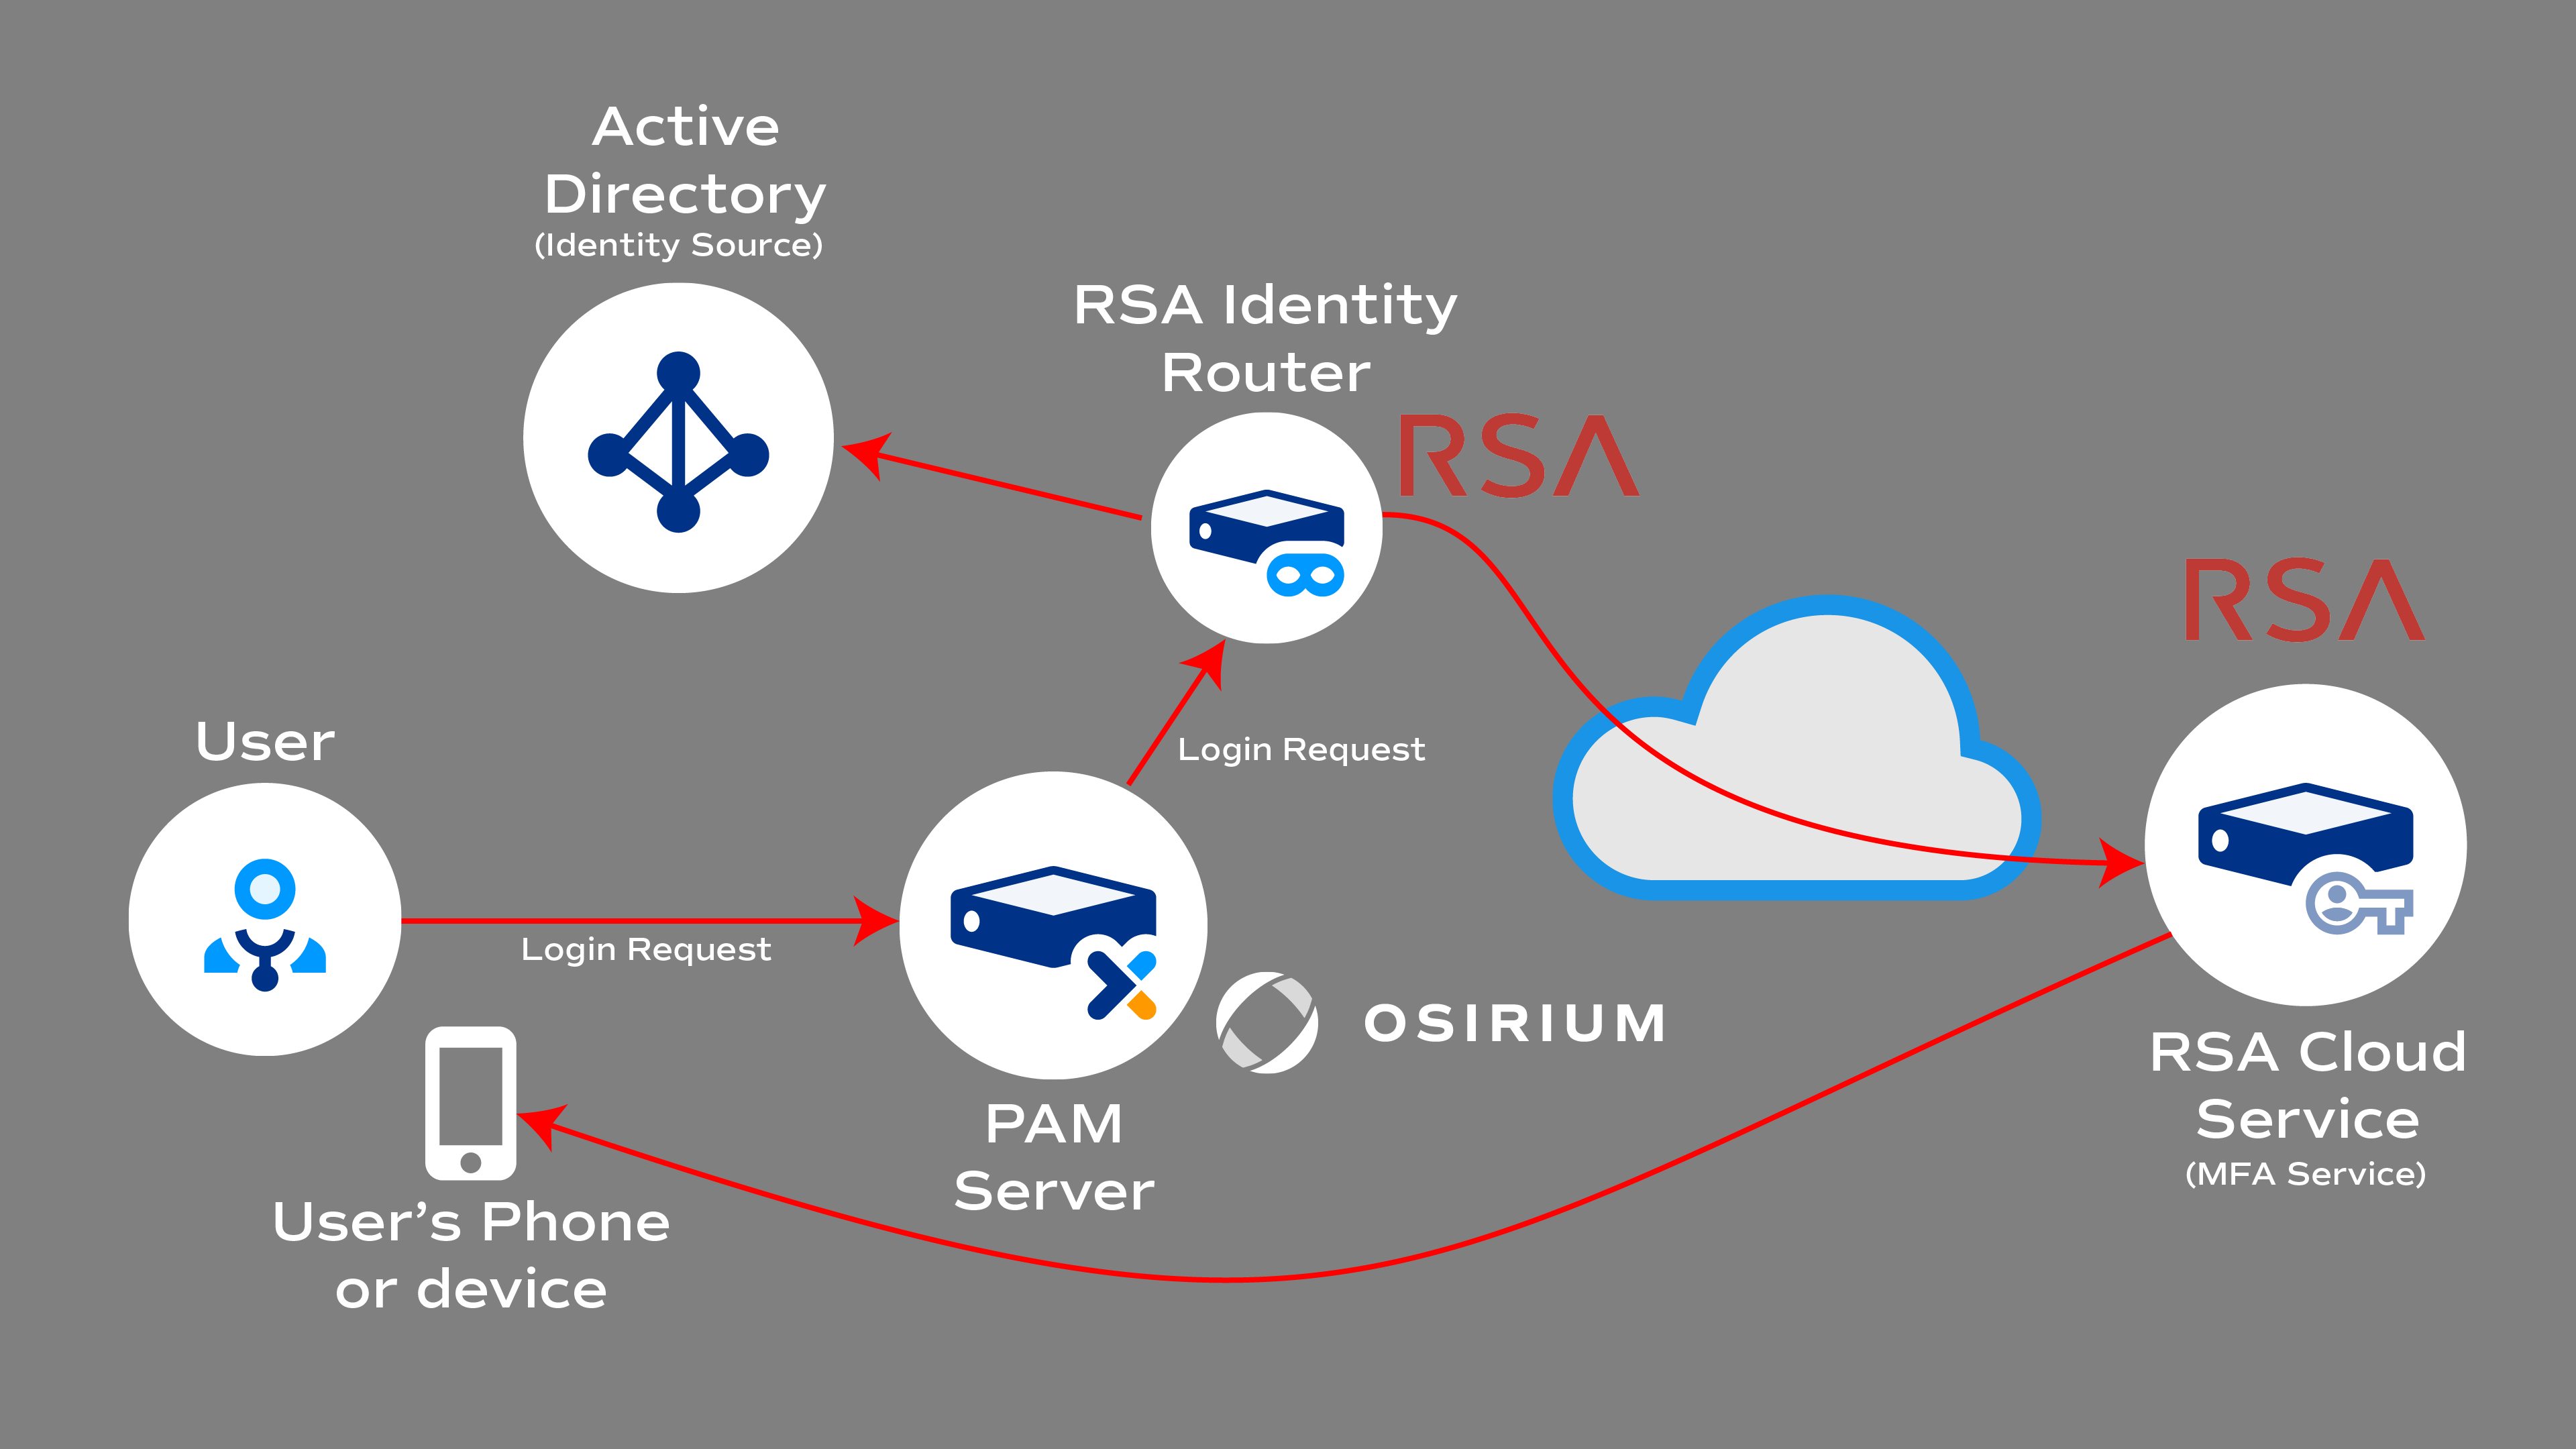 RSA SecurID Architecture showing Identity Router